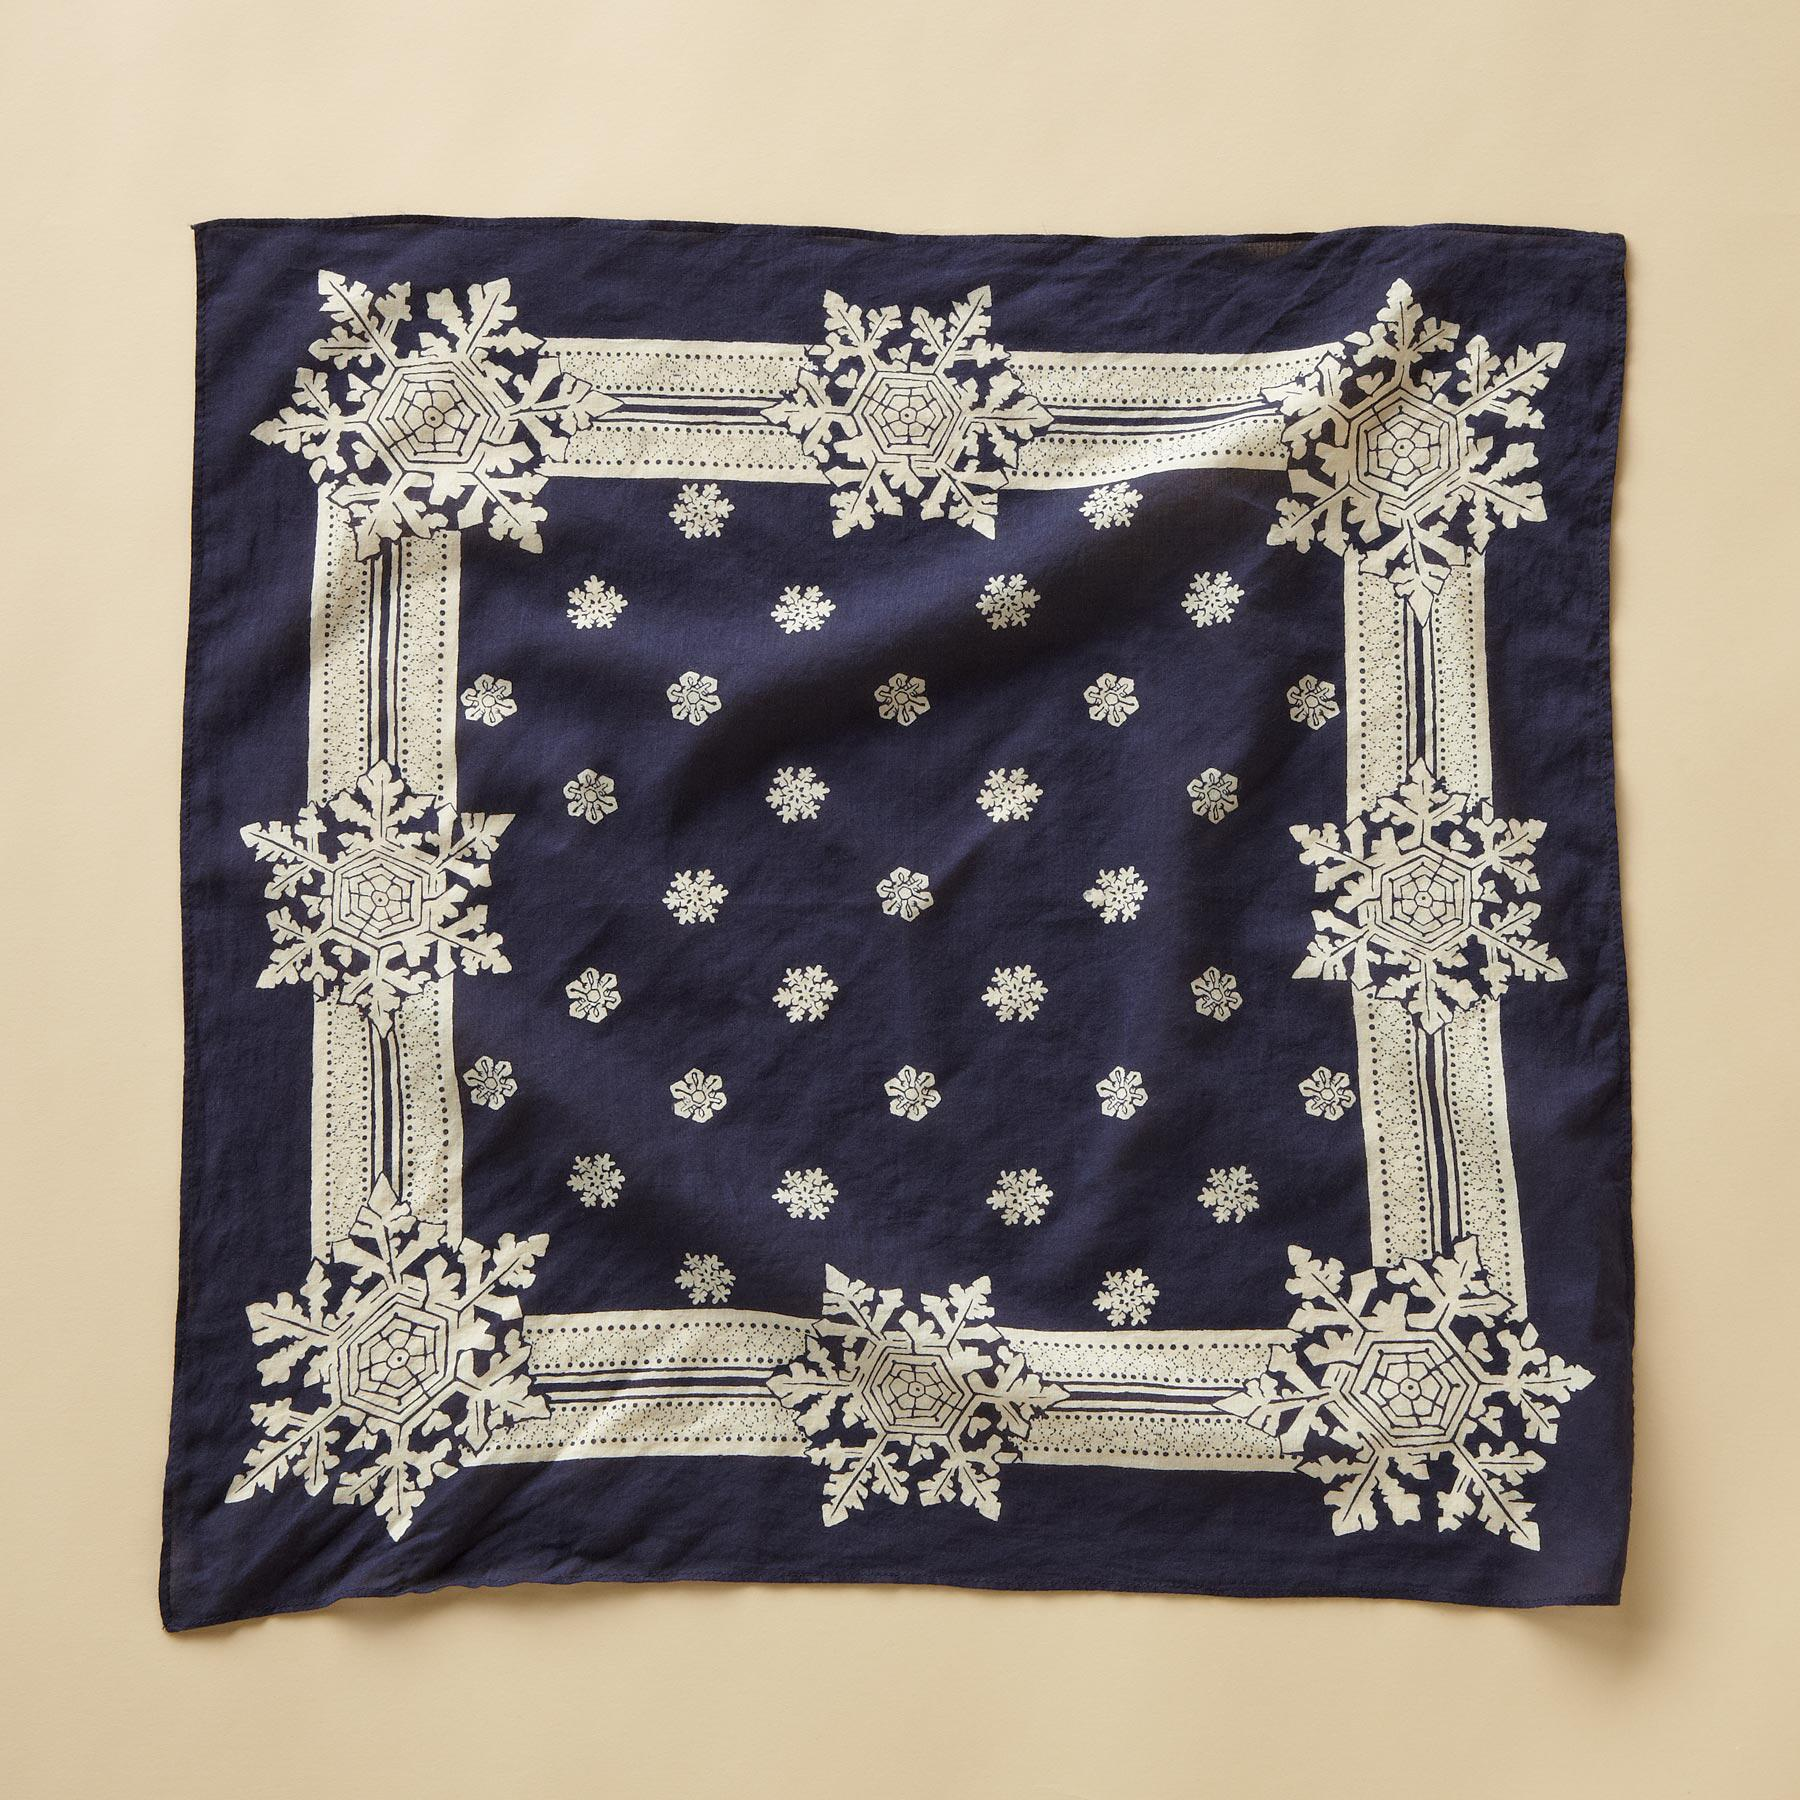 VINTAGE INSPIRED BANDANA: View 1